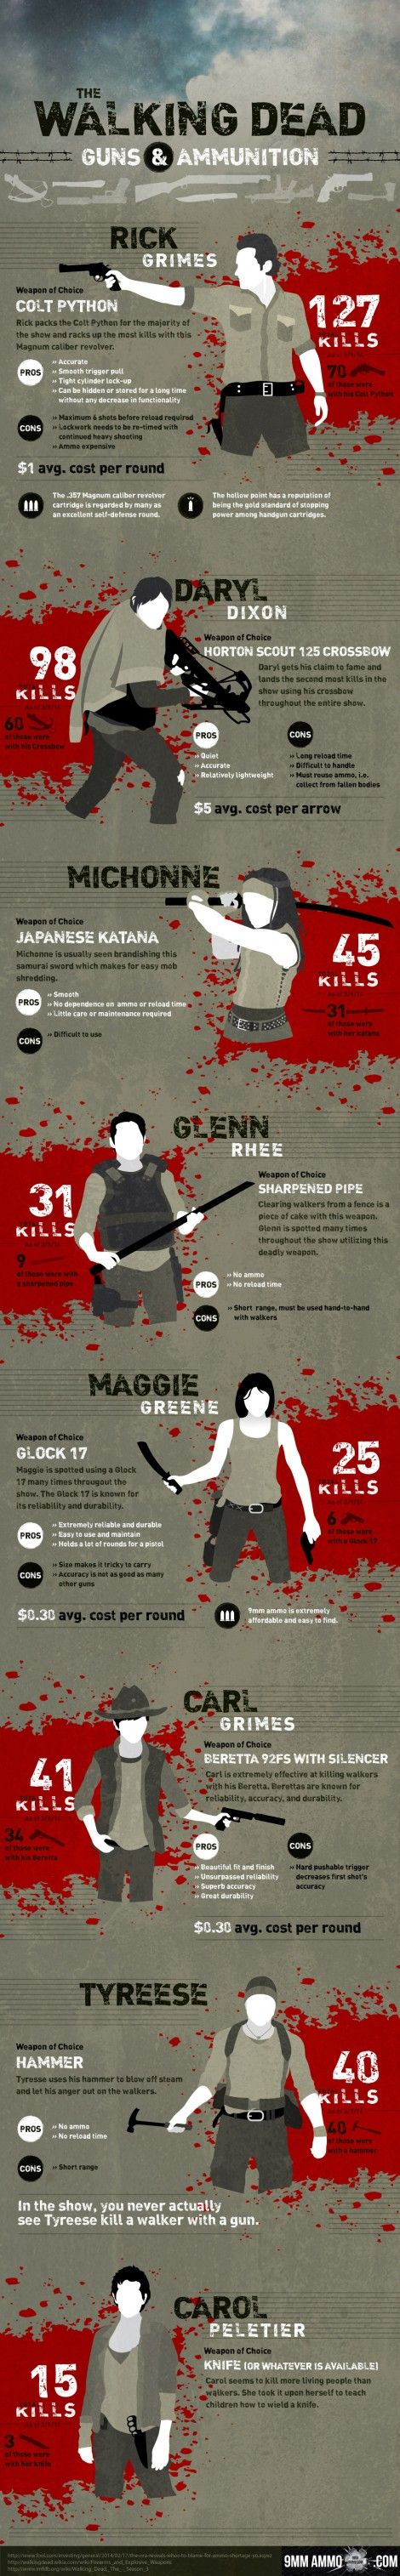 The Walking Dead Infographic: All About Guns and Ammo!